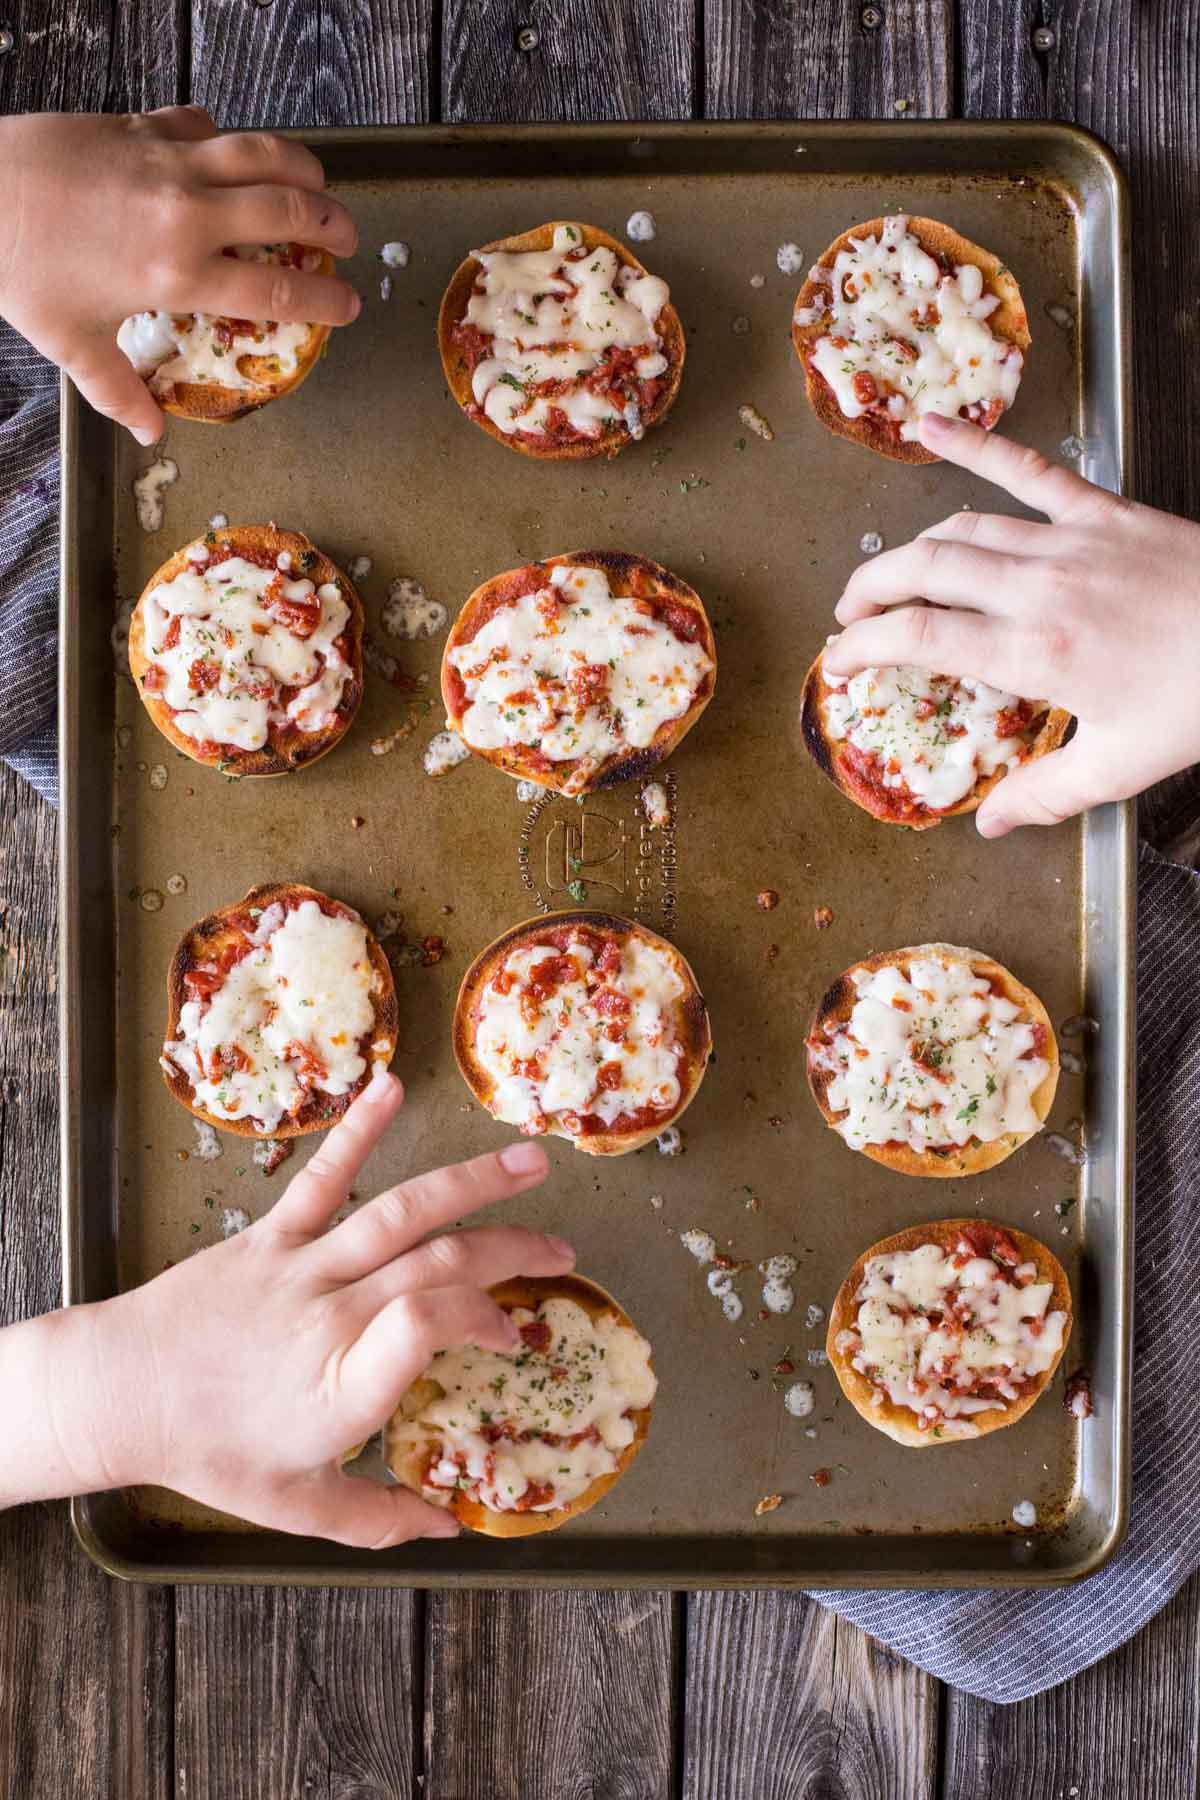 Top down view of Homemade Mini Bagel Pizzas on a baking sheet with hands reaching in.